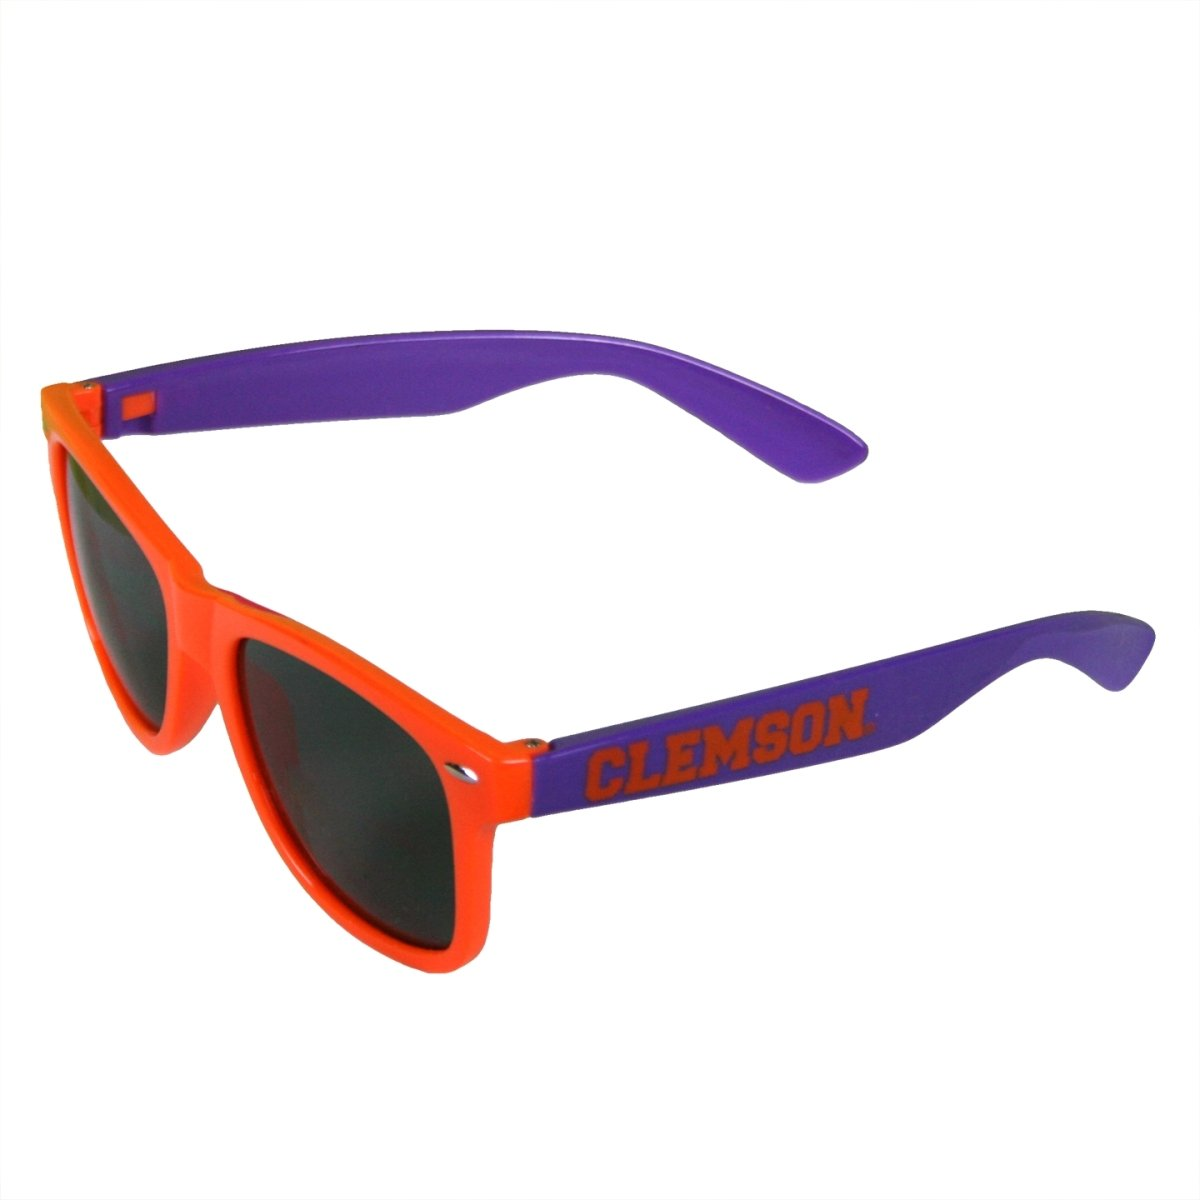 Mix-n-match Sunglasses Orange Face Purple Arms - Mr. Knickerbocker